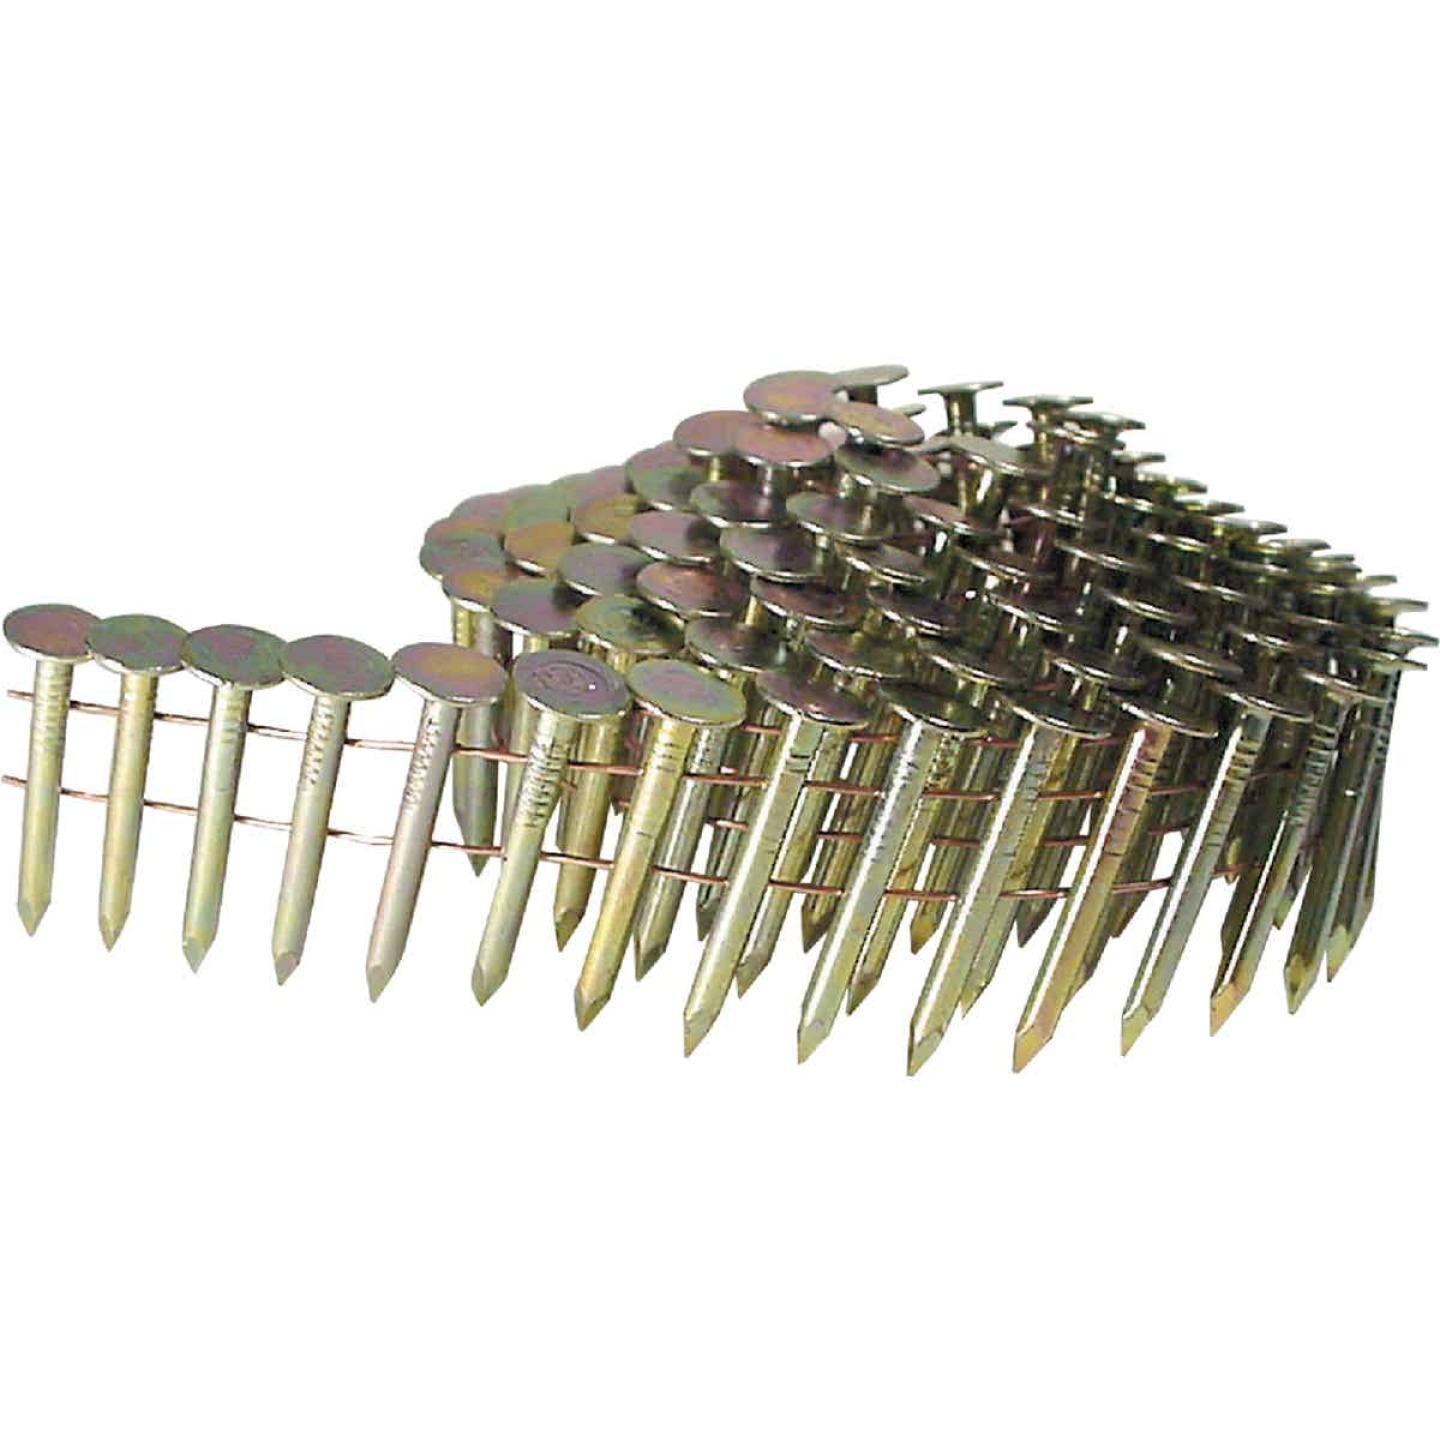 Grip-Rite 15 Degree Wire Weld Electrogalvanized Coil Roofing Nail, 3/4 In. (7200 Ct.) Image 1